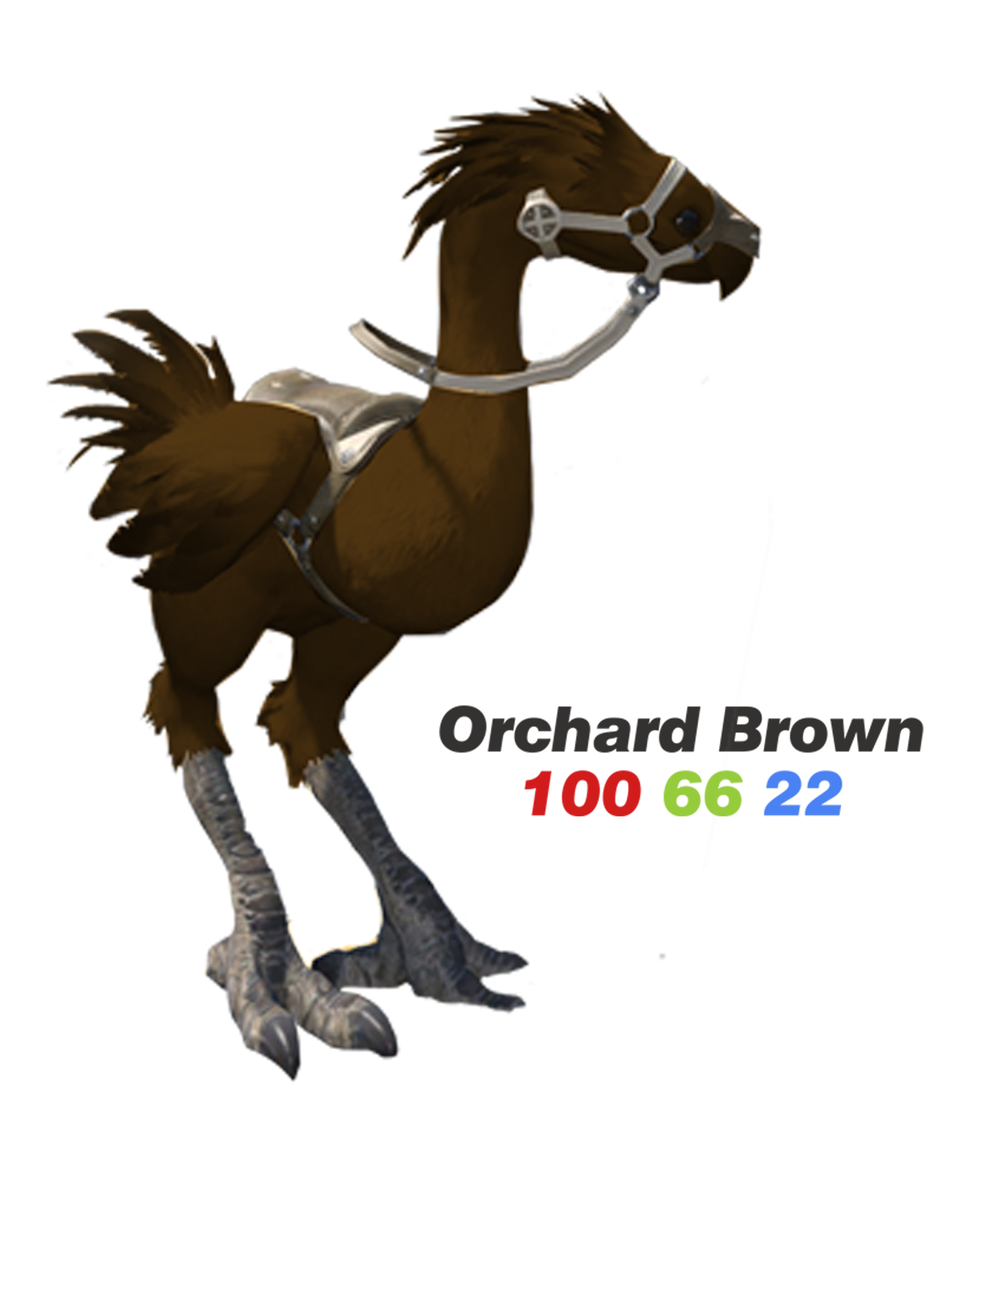 OrchardBrown.png